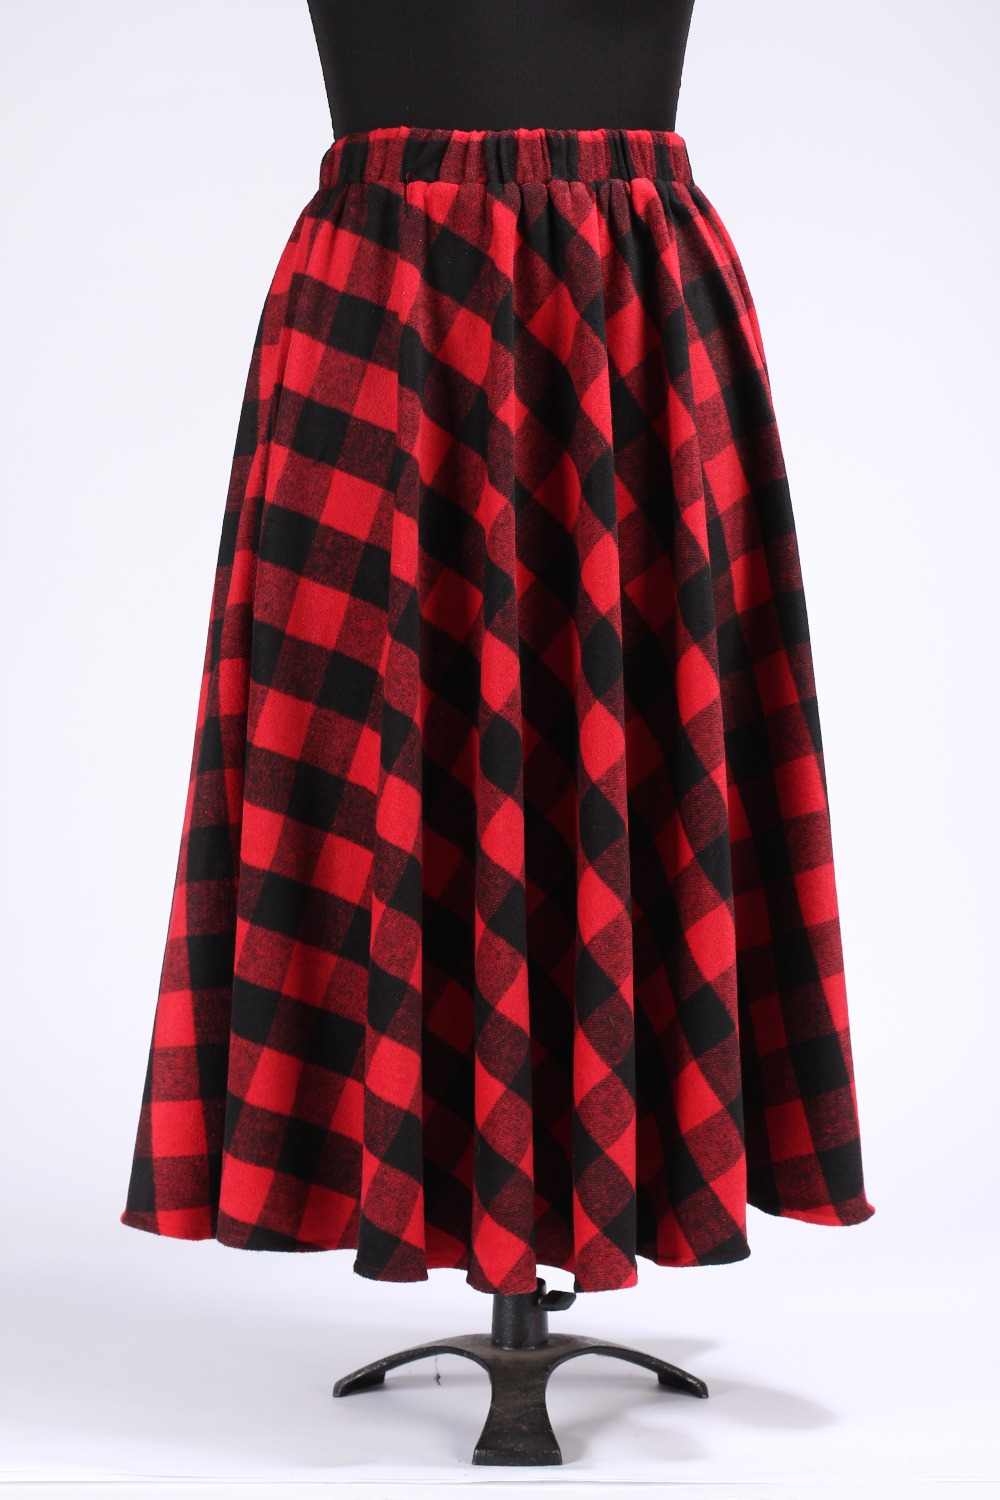 J Crew mini skirt Red and black plaid % wool Side zip Fully lined Excellent condition Women's size 4. Super Low Fat Plaid School Girl Mini Skirt Size Large red tartan print. $ 1 bid. It is a red tartan print. It is preowned and a size Large. The flat waist is 15